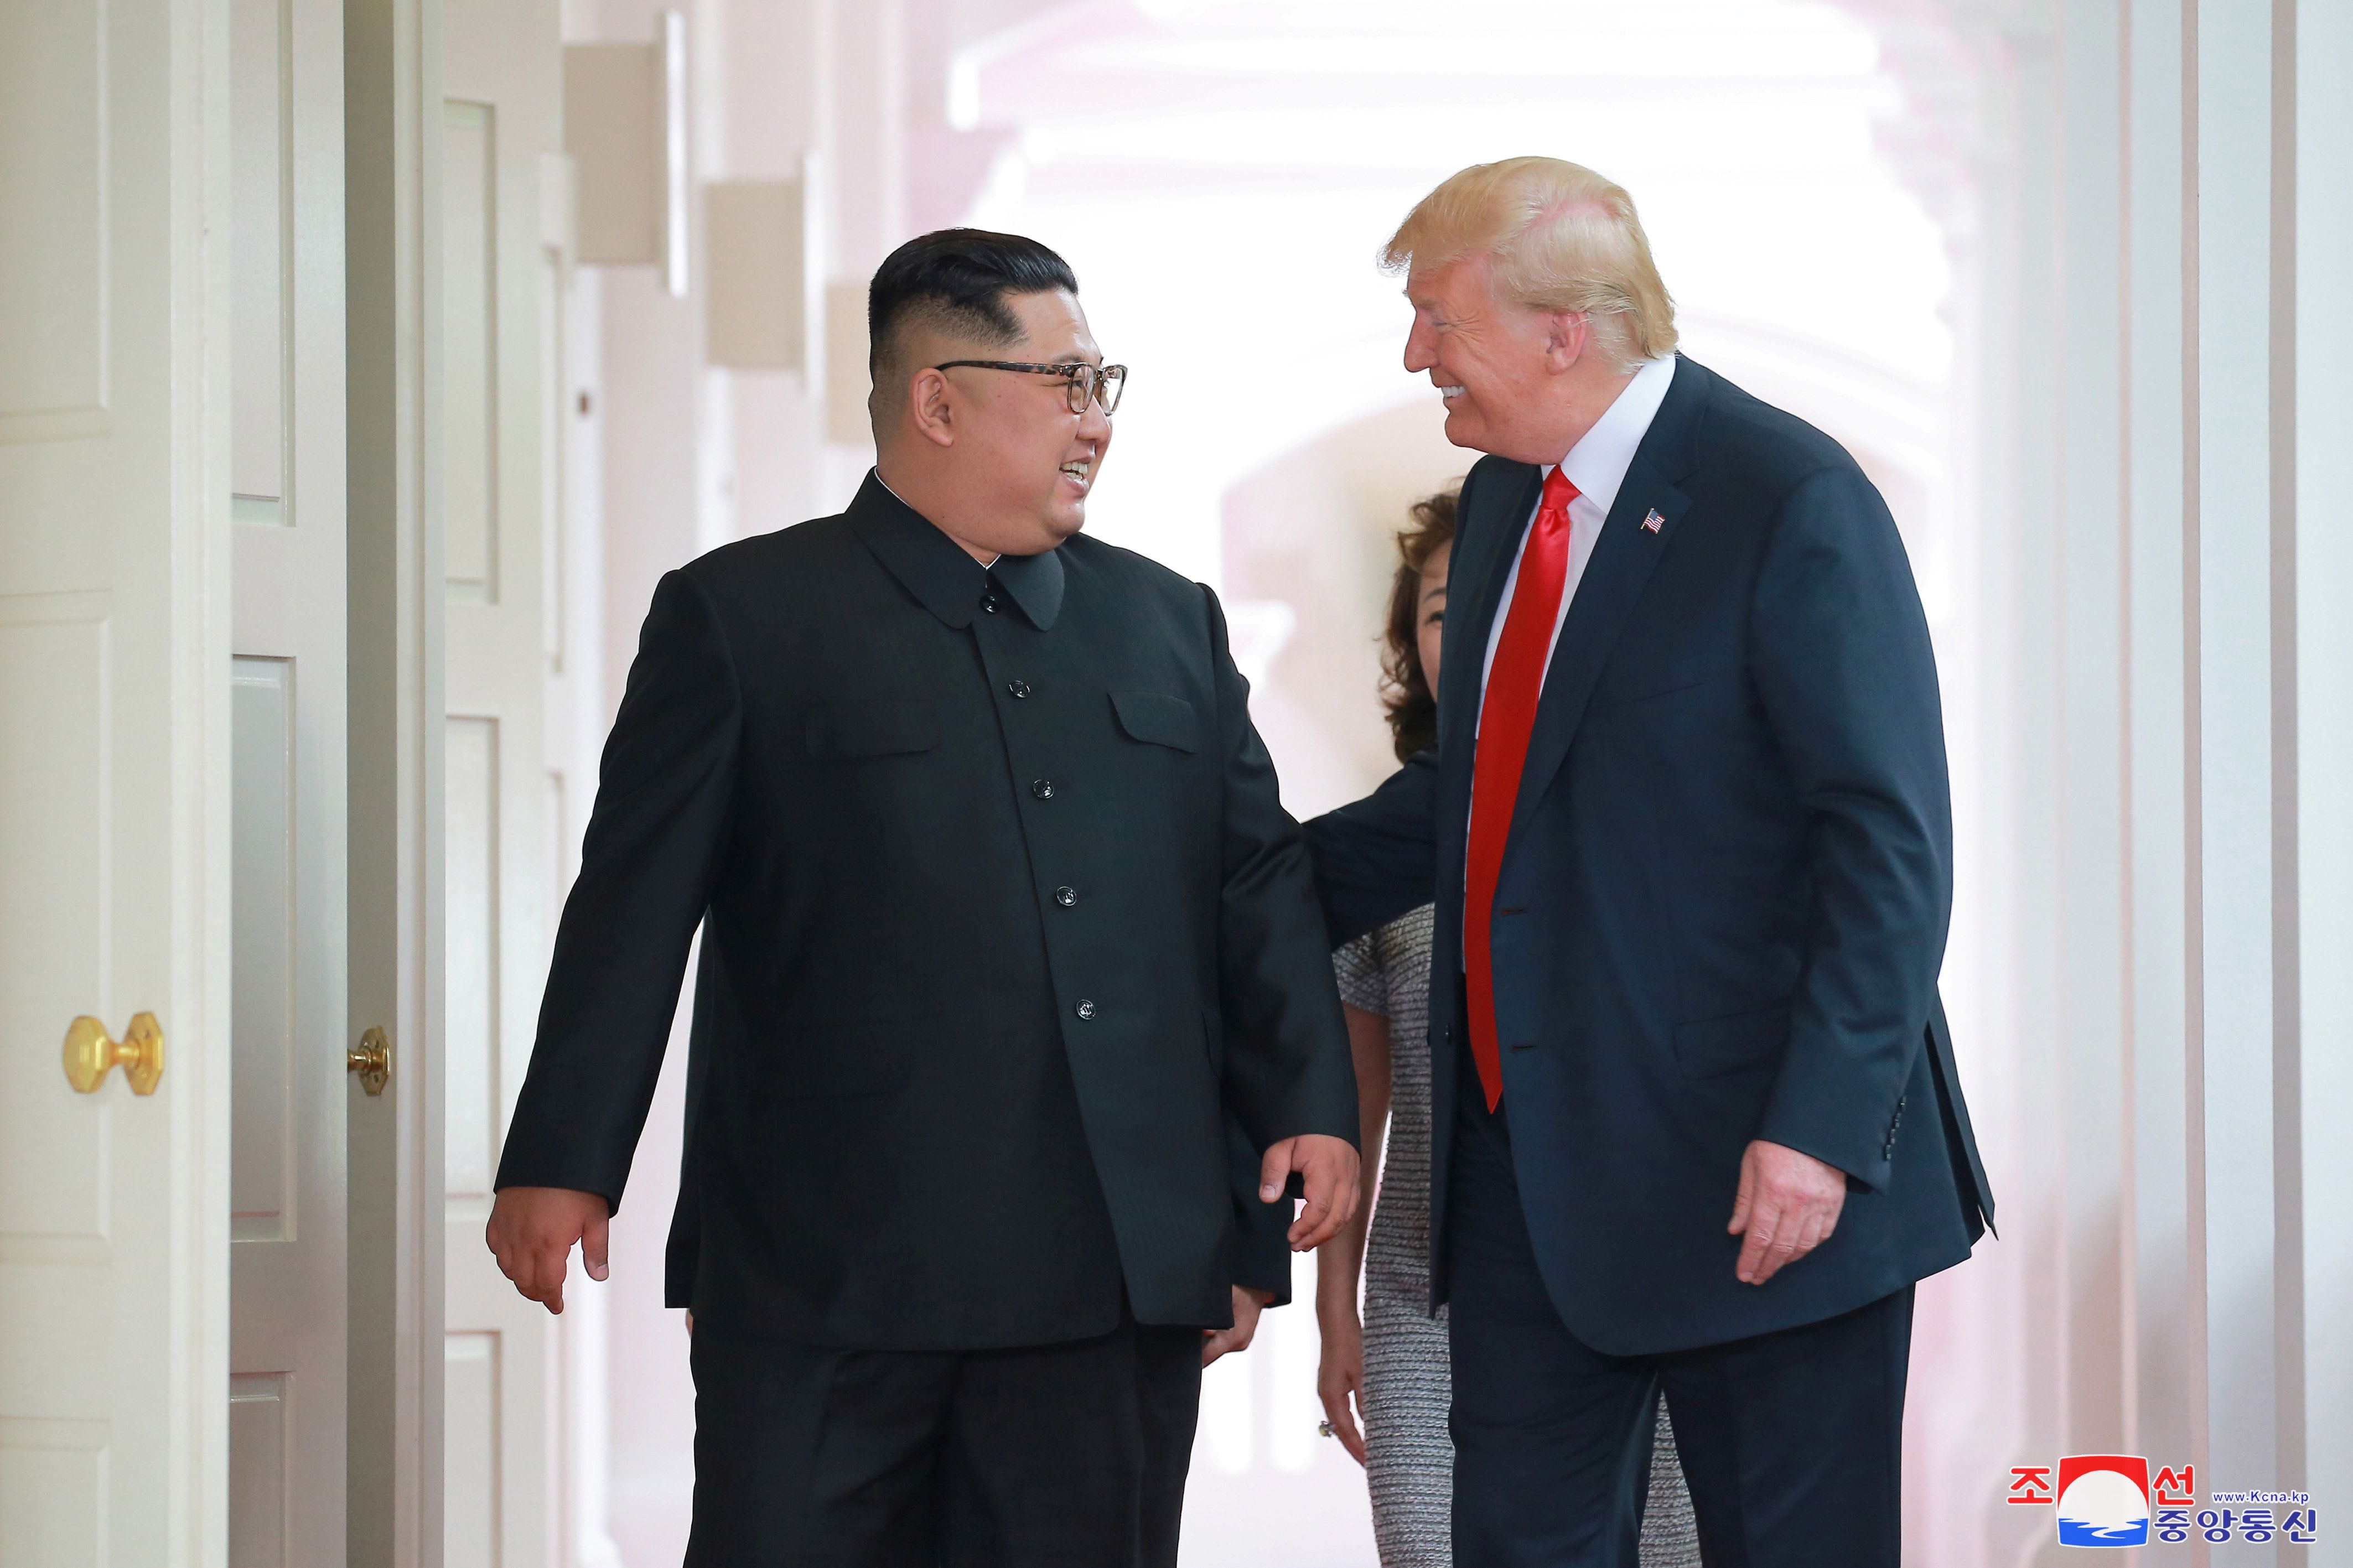 U.S. President Donald Trump walks with North Korean leader Kim Jong Un at the Capella Hotel on Sentosa island in Singapore in this picture released on June 12, 2018 by North Korea's Korean Central News Agency. KCNA via REUTERS ATTENTION EDITORS - THIS PICTURE WAS PROVIDED BY A THIRD PARTY. REUTERS IS UNABLE TO INDEPENDENTLY VERIFY THE AUTHENTICITY, CONTENT, LOCATION OR DATE OF THIS IMAGE. NO THIRD PARTY SALES. NOT FOR USE BY REUTERS THIRD PARTY DISTRIBUTORS. SOUTH KOREA OUT. NO COMMERCIAL OR EDITORIAL SALES IN SOUTH KOREA.